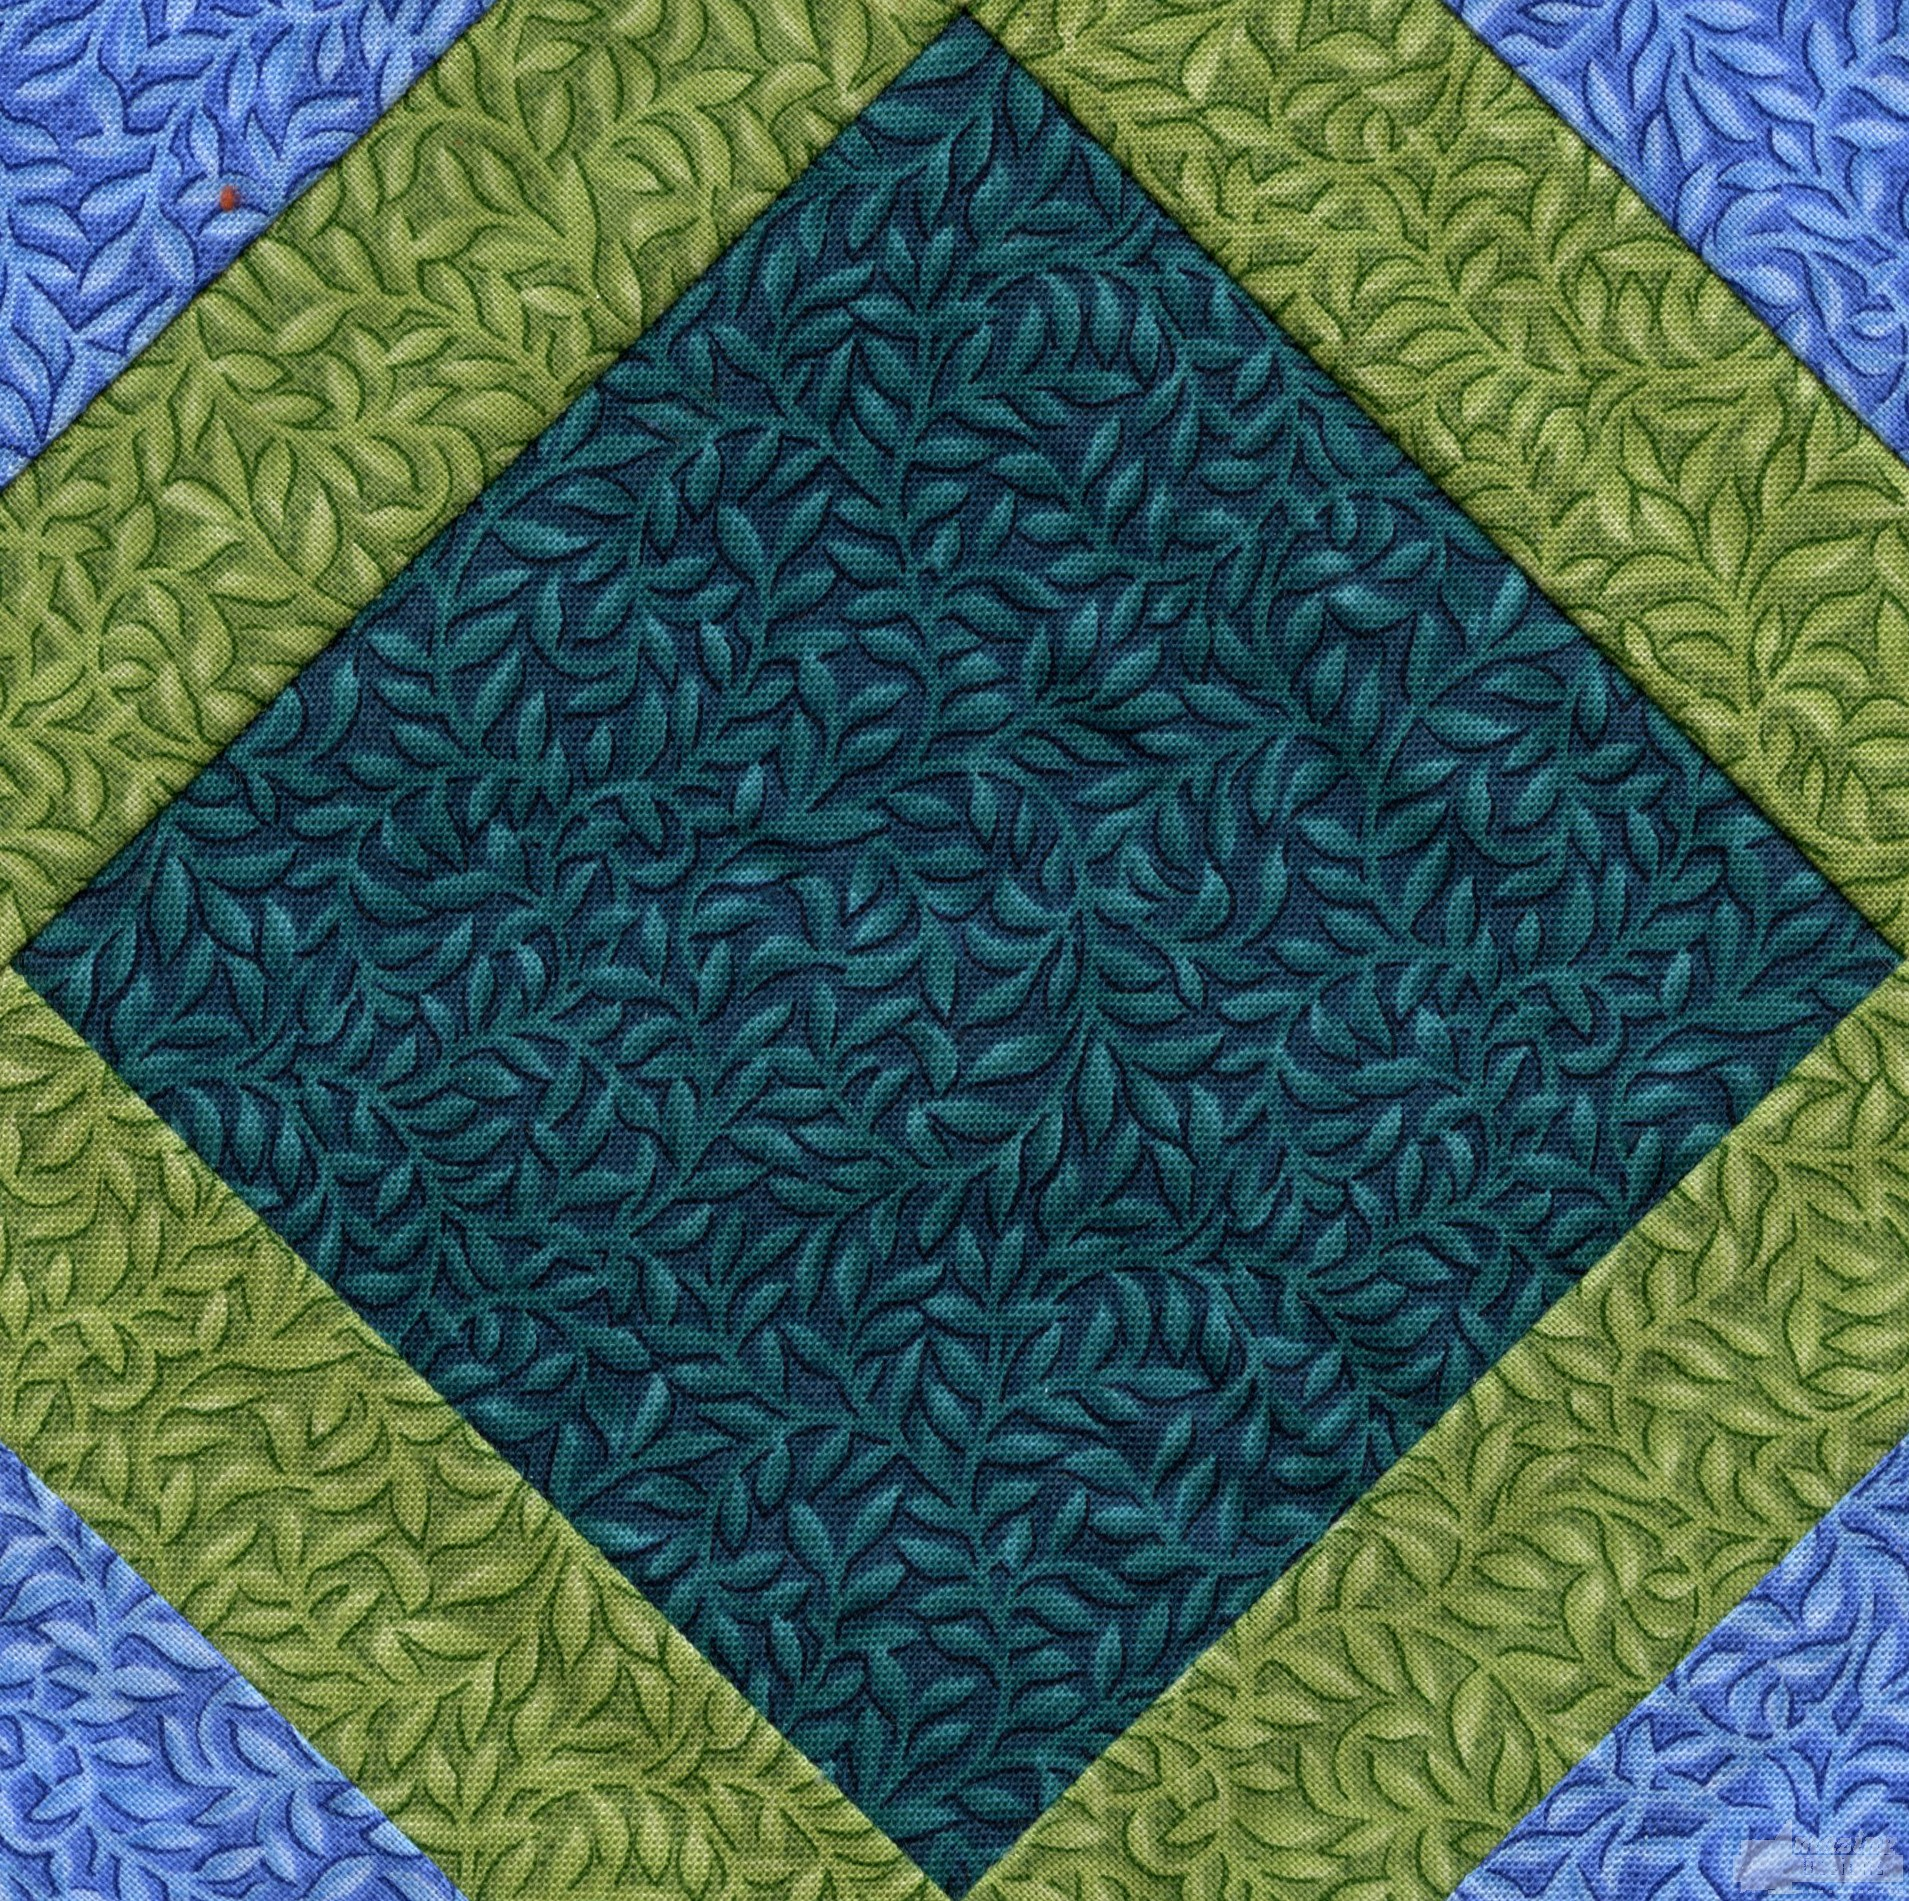 Embroidery Quilt Block Designs : Fancy Square Quilt Block Embroidery Design